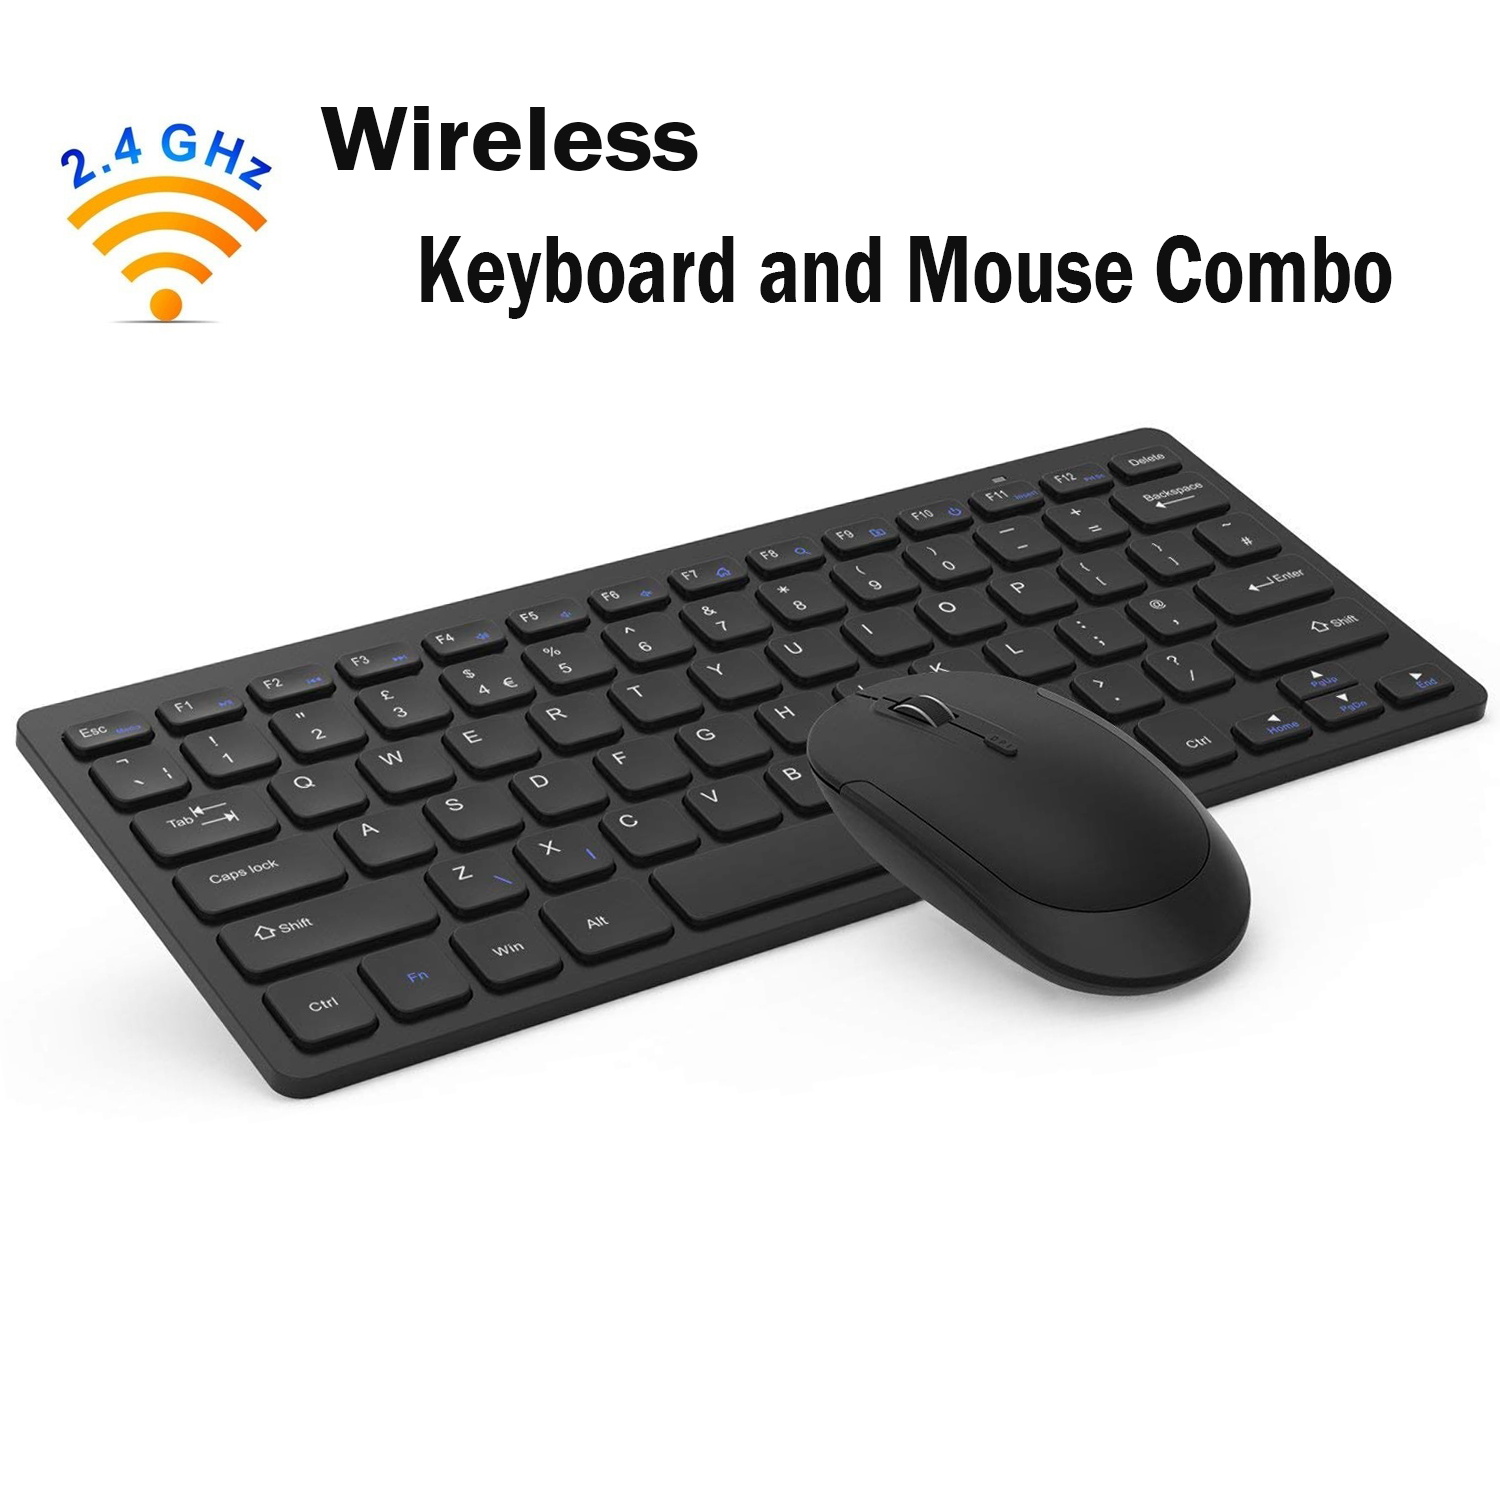 Wireless Keyboard Mouse Combo, Jelly Comb 2.4GHz Ultra Thin Compact Portable SMALL Wireless Keyboard and Mouse Combo Set for PC, Desktop, Computer, Laptop, Windows XP/Vista / 7/8 / 10 - Black